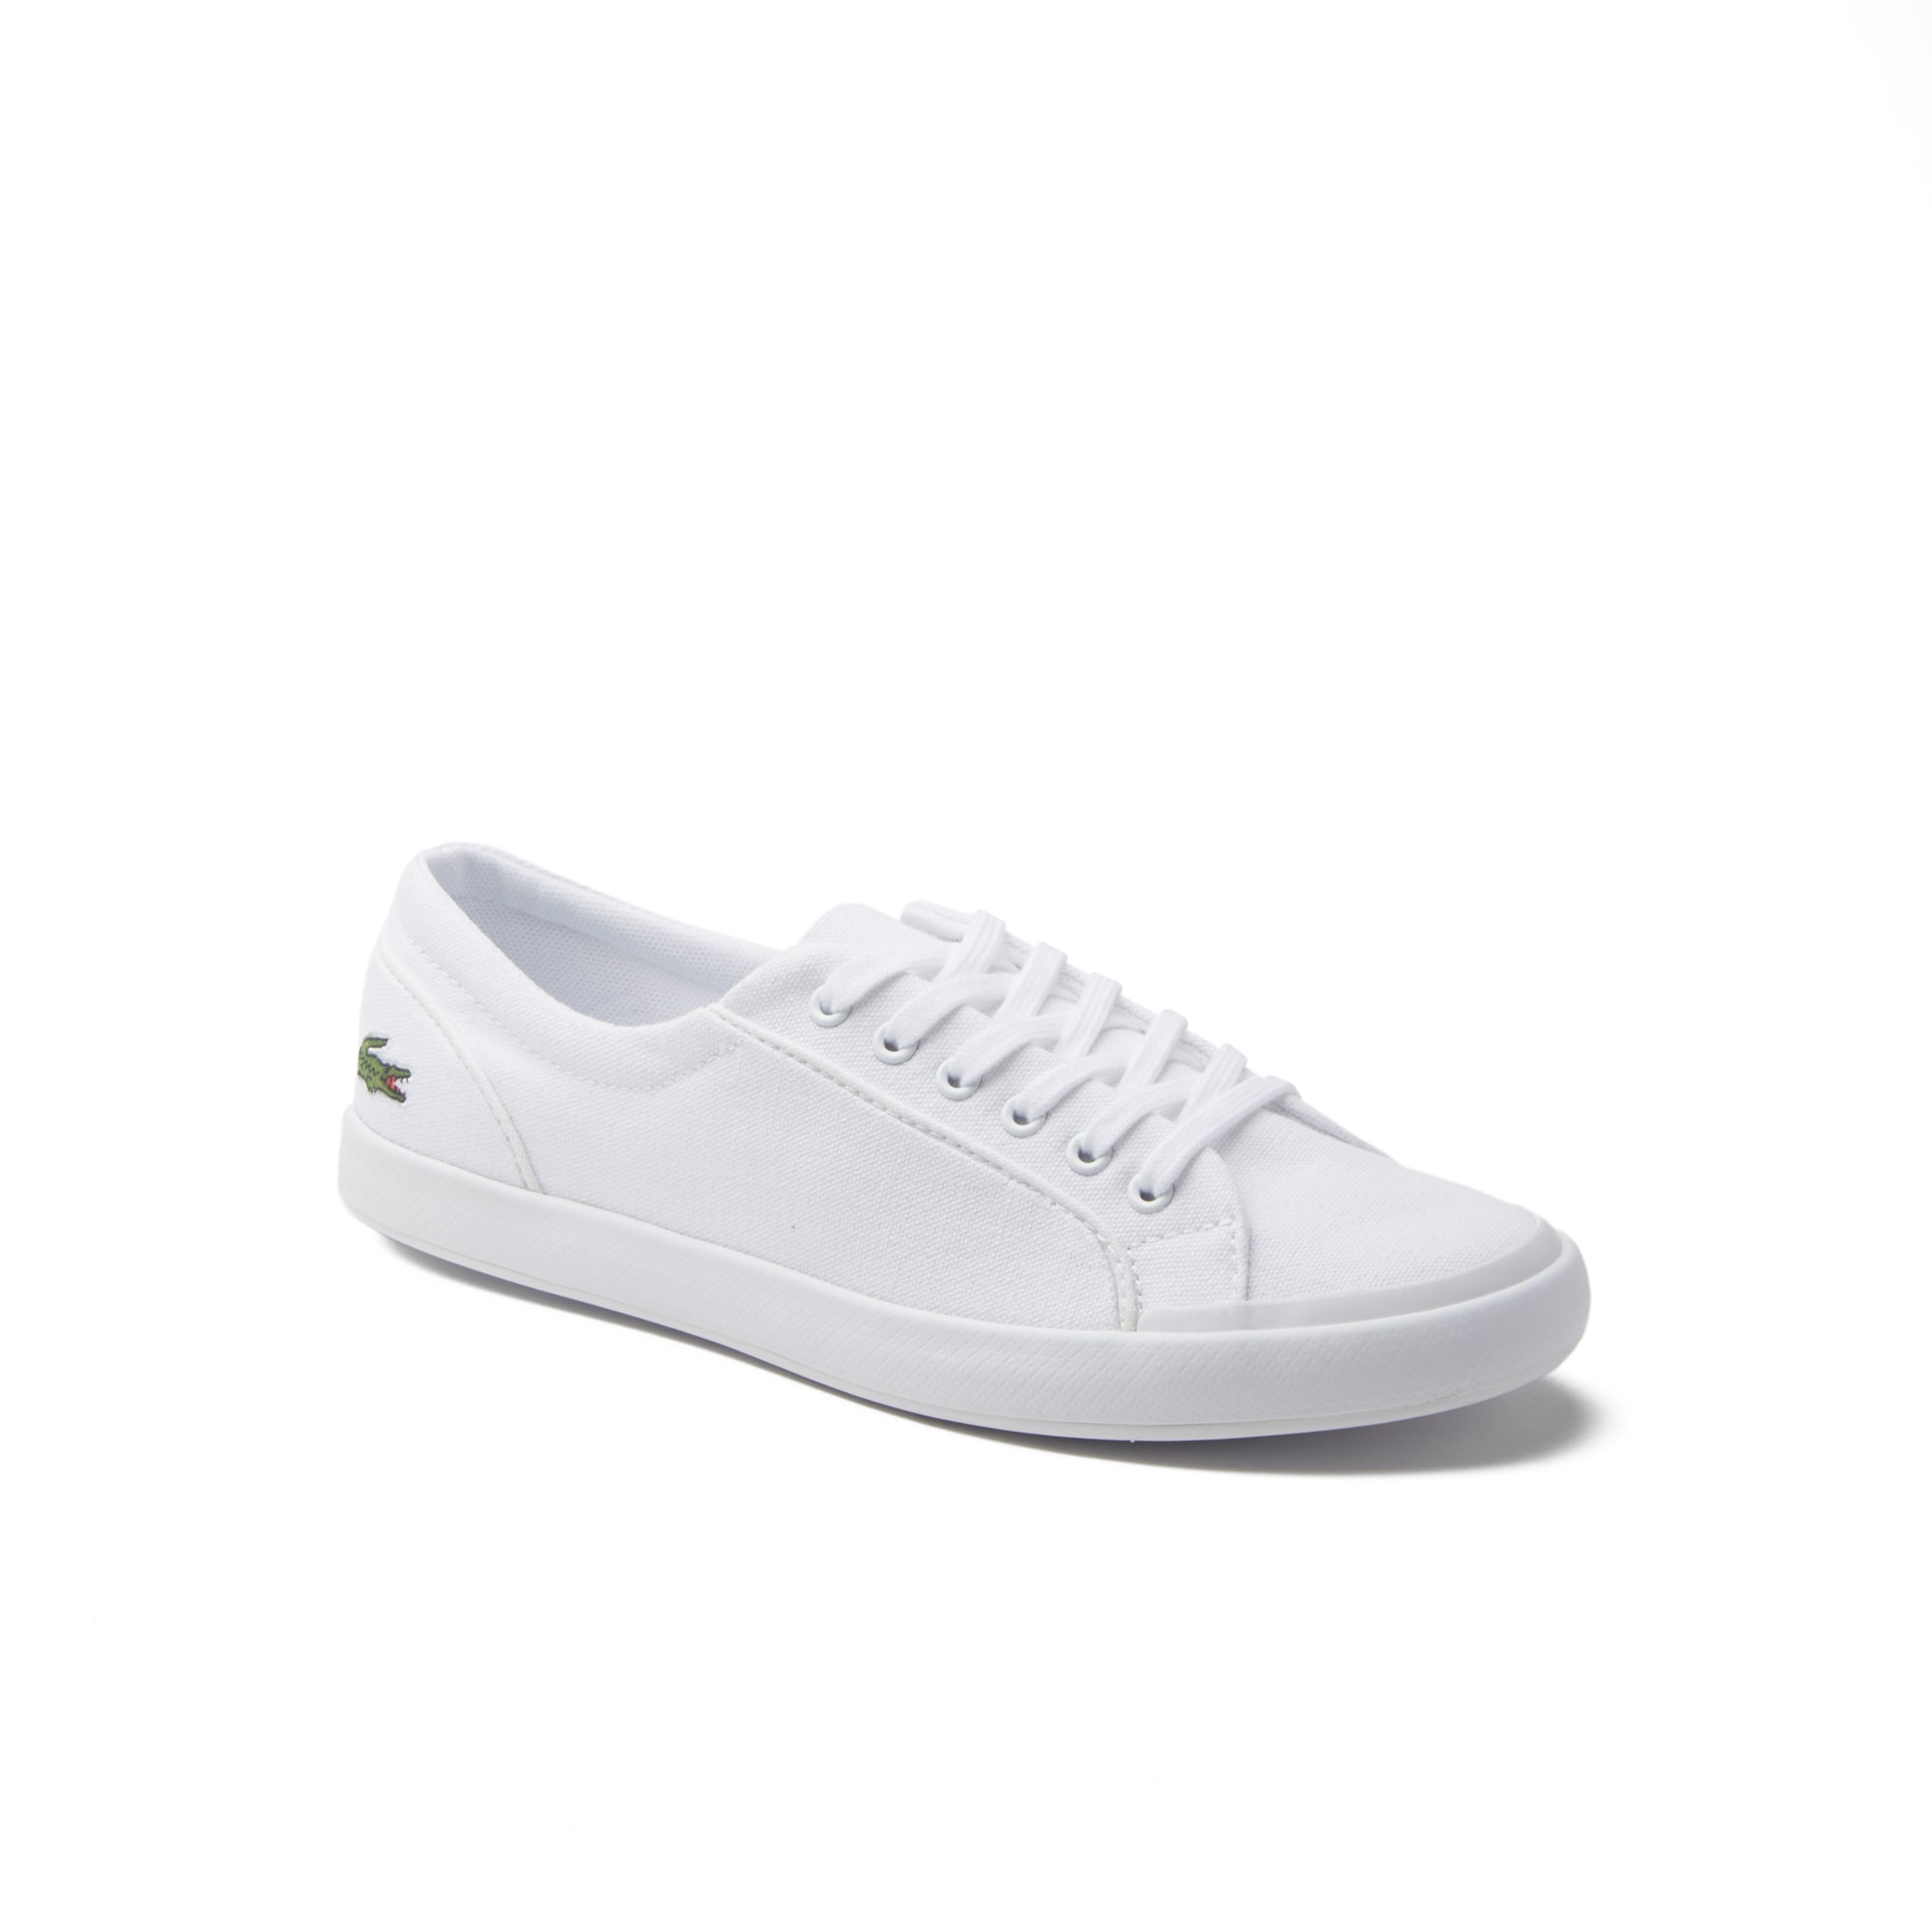 Tela Basse Lancelle Sneakers In Lacoste Cgqxt1x